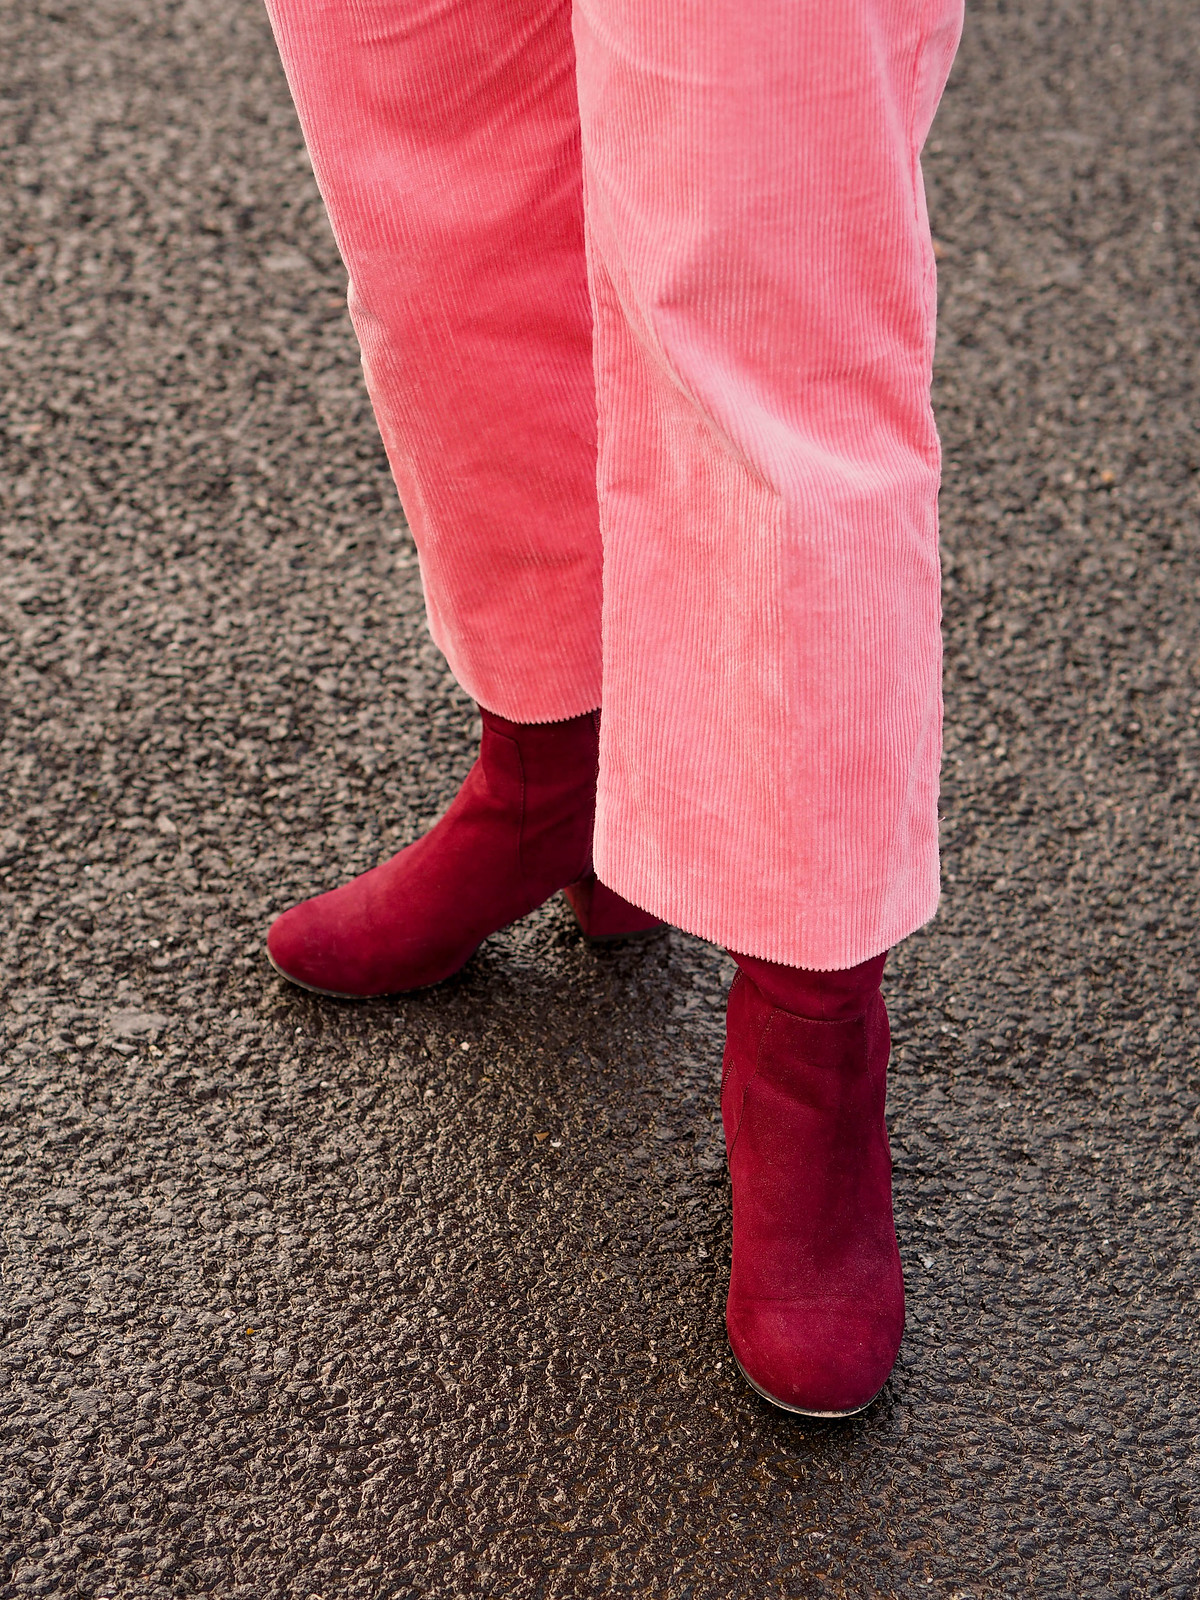 An Orange, Pink and Red Colour Combination Just WORKS (Catherine Summers AKA Not Dressed As Lamb wearing orange giraffe print coat, pink corduroy jumpsuit, red and white patterned sweater and burgundy boots)